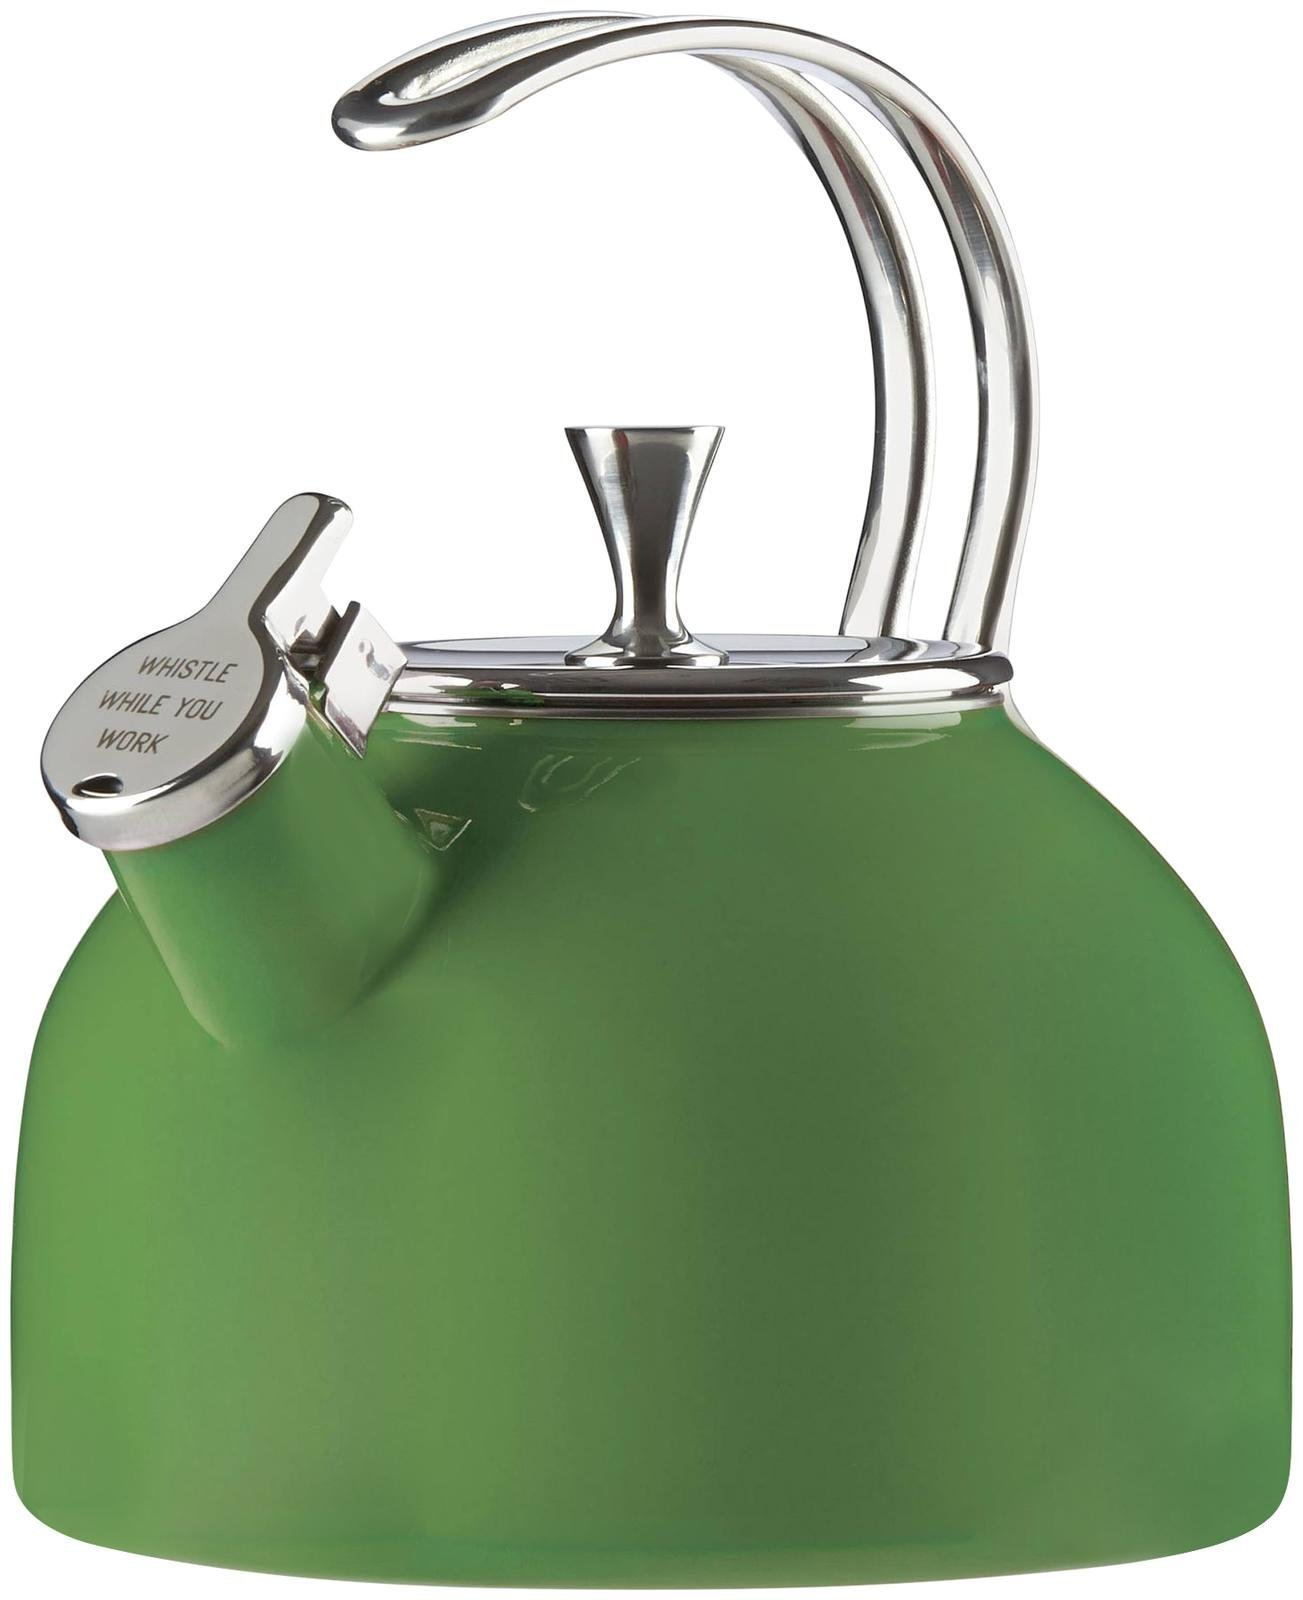 Kate Spade New York ALL IN GOOD TASTE METAL KETTLE, Green